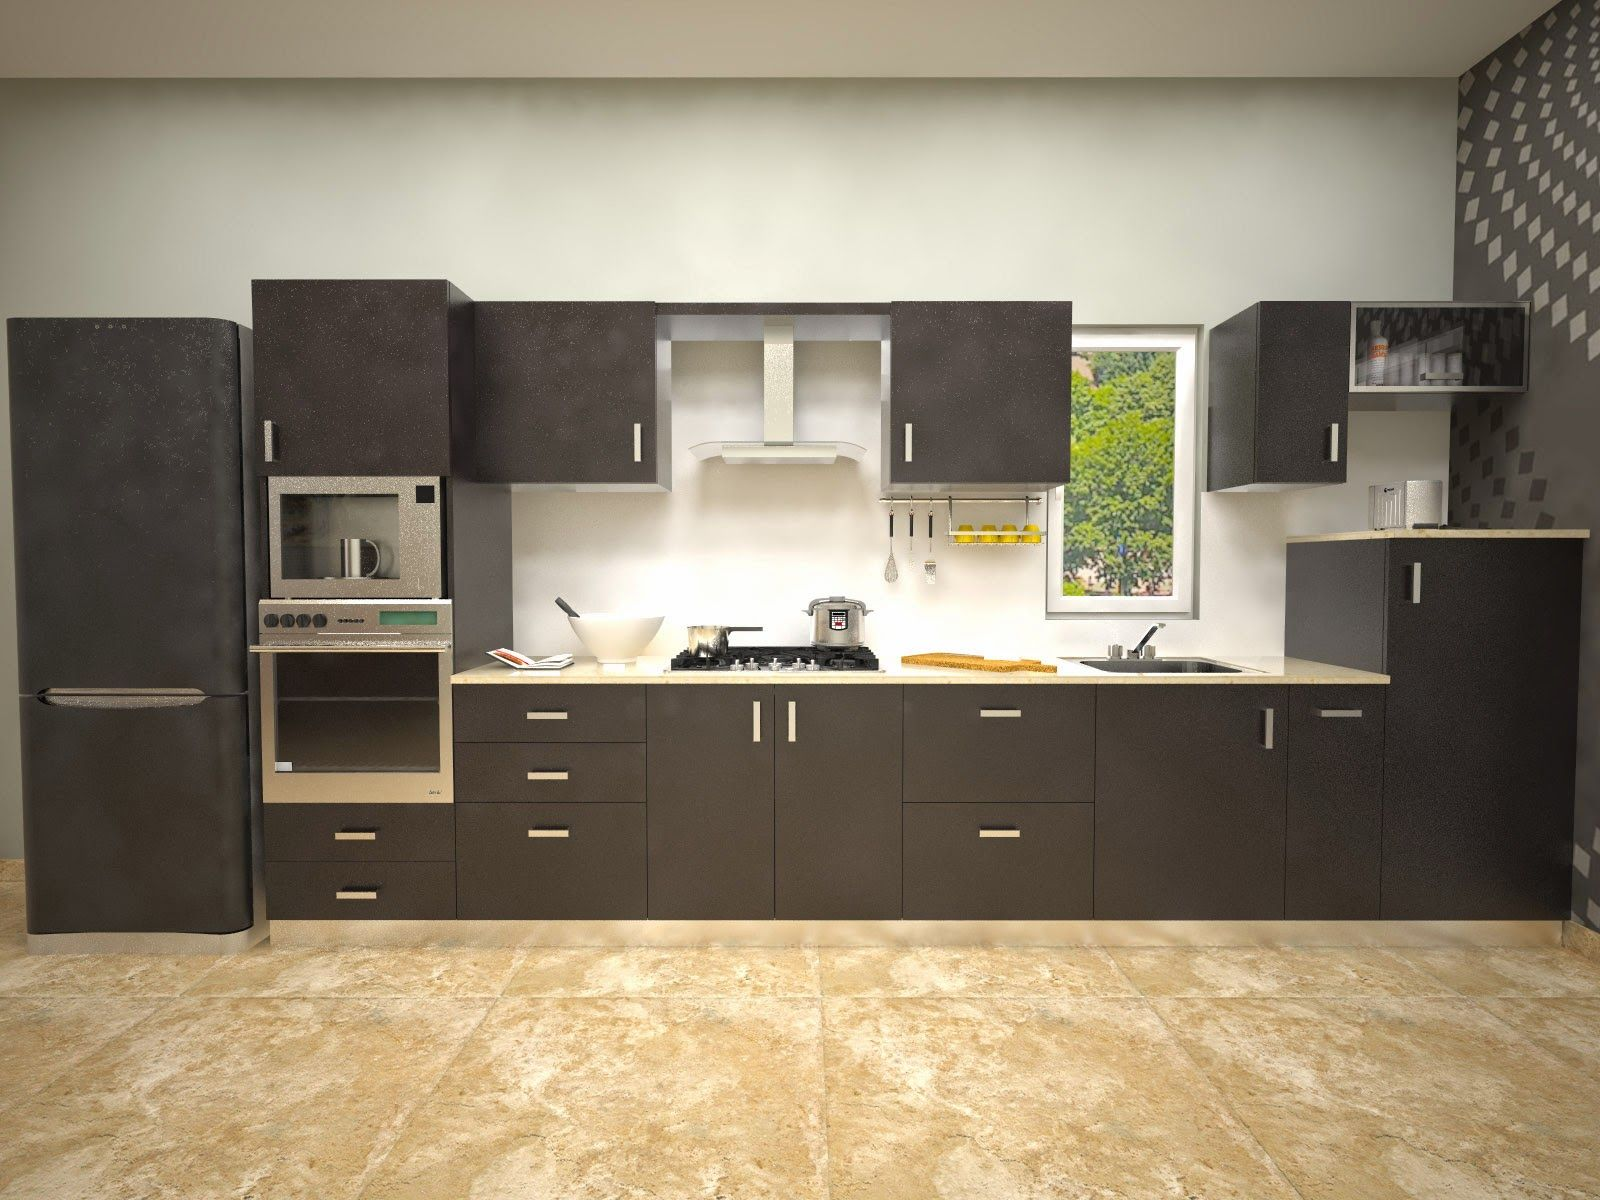 Straight Modular Kitchens Gallery Aamodakitchenideas In 2019